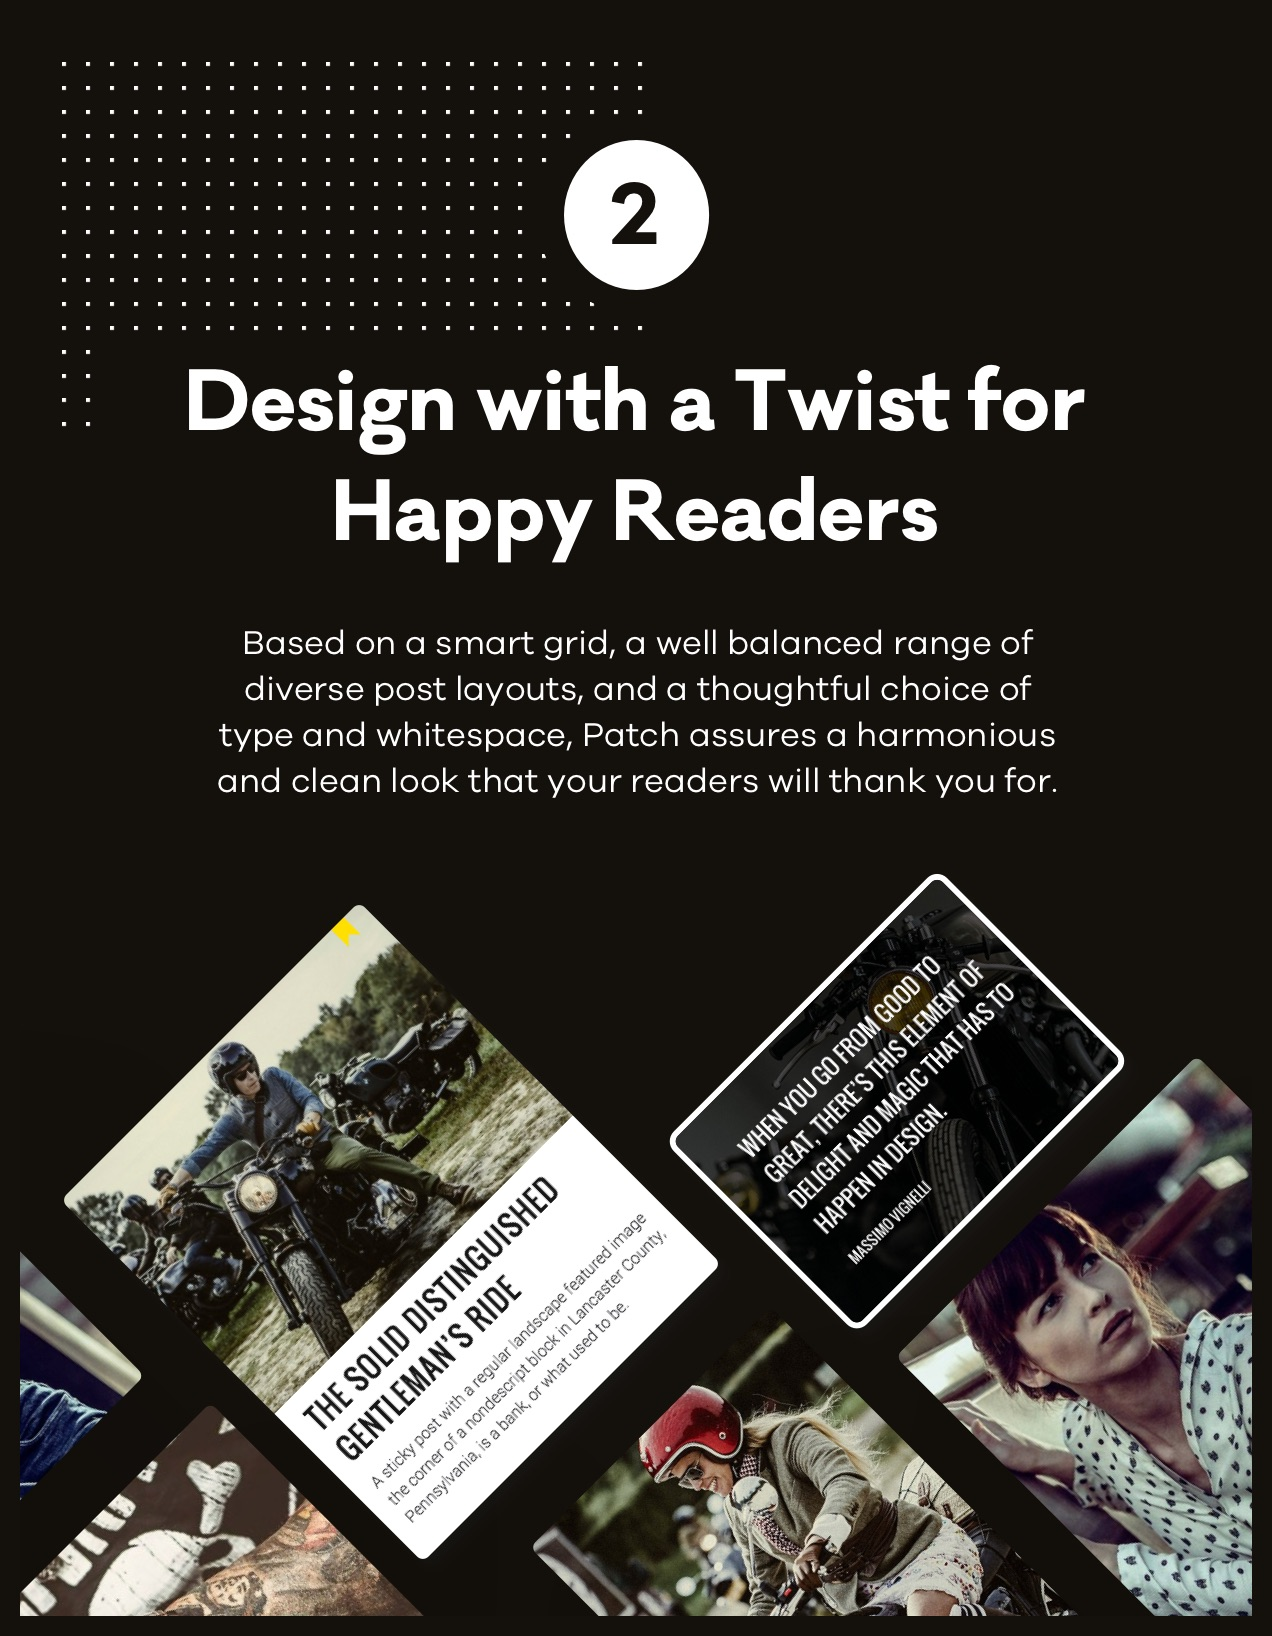 Design with a Twist for Happy Readers